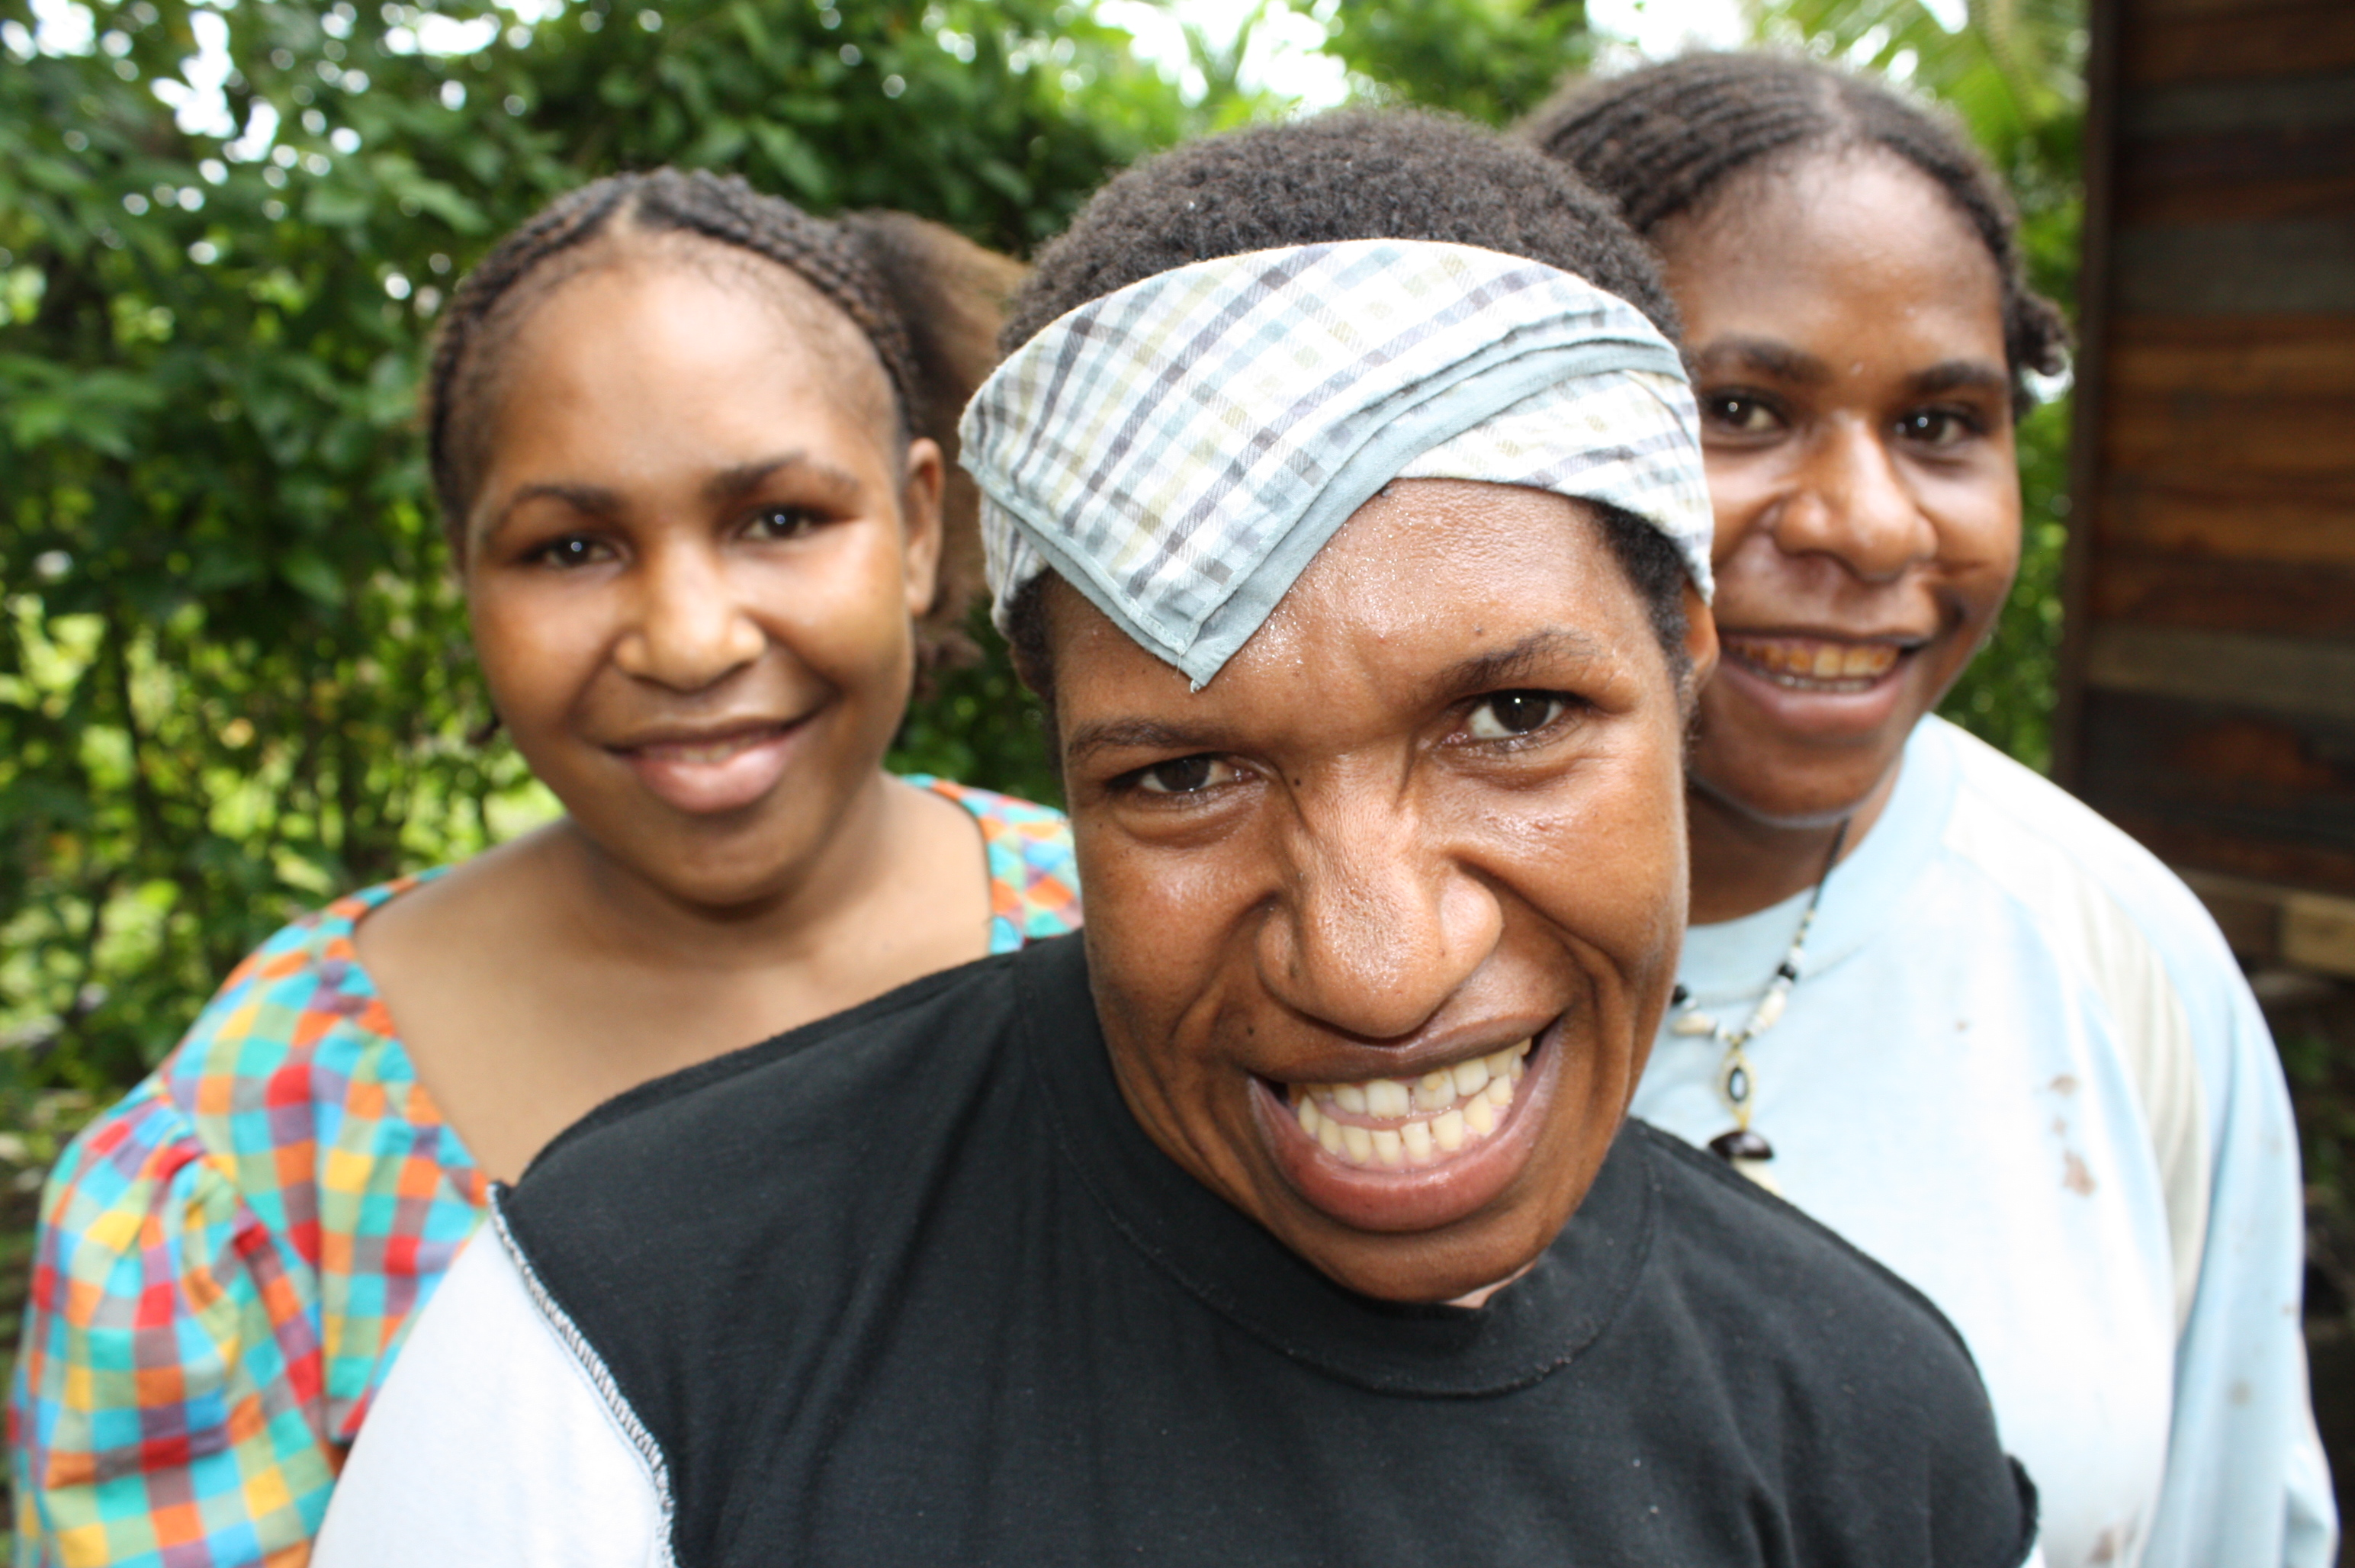 Three women smile to the camera in Madang, Papua New Guinea